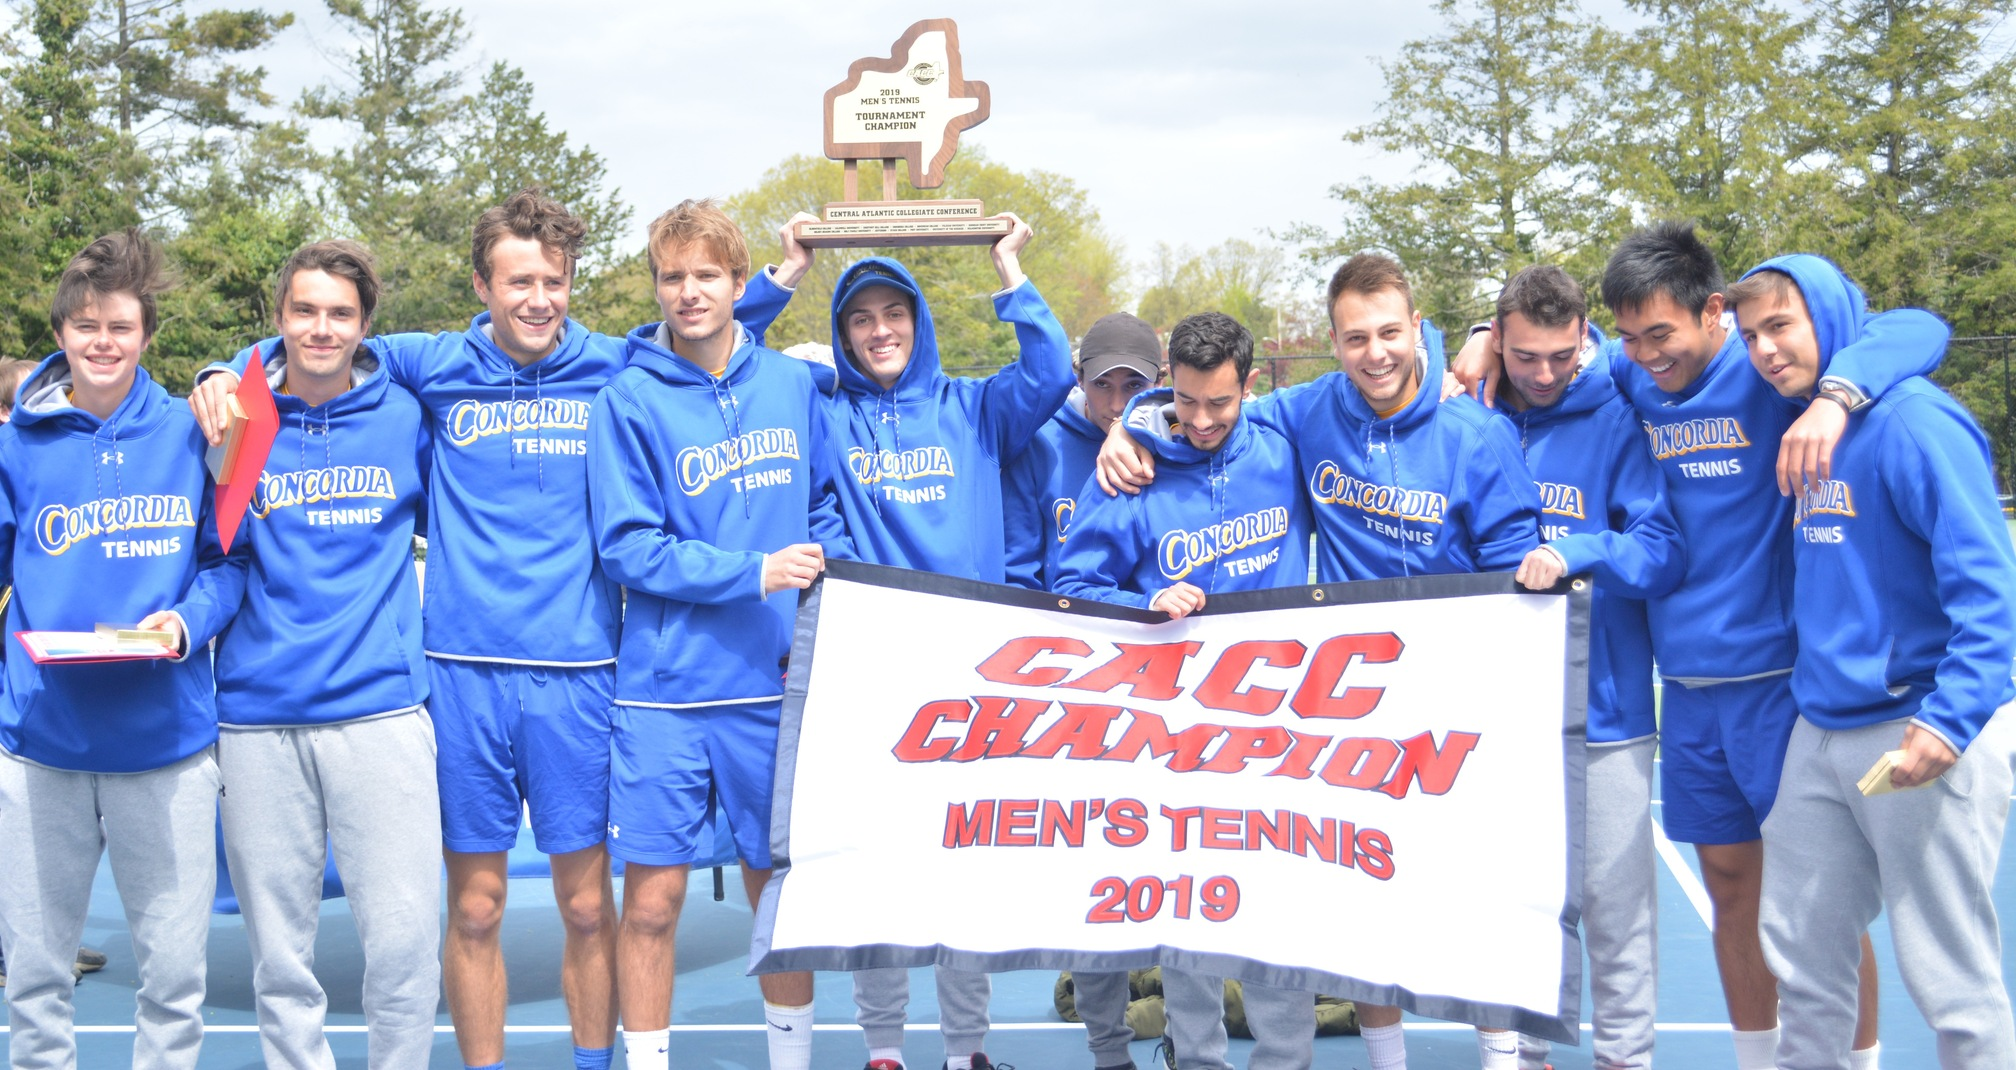 Men's Tennis Wins Ninth CACC Championship Behind 4-0 Victory Over Chestnut Hill